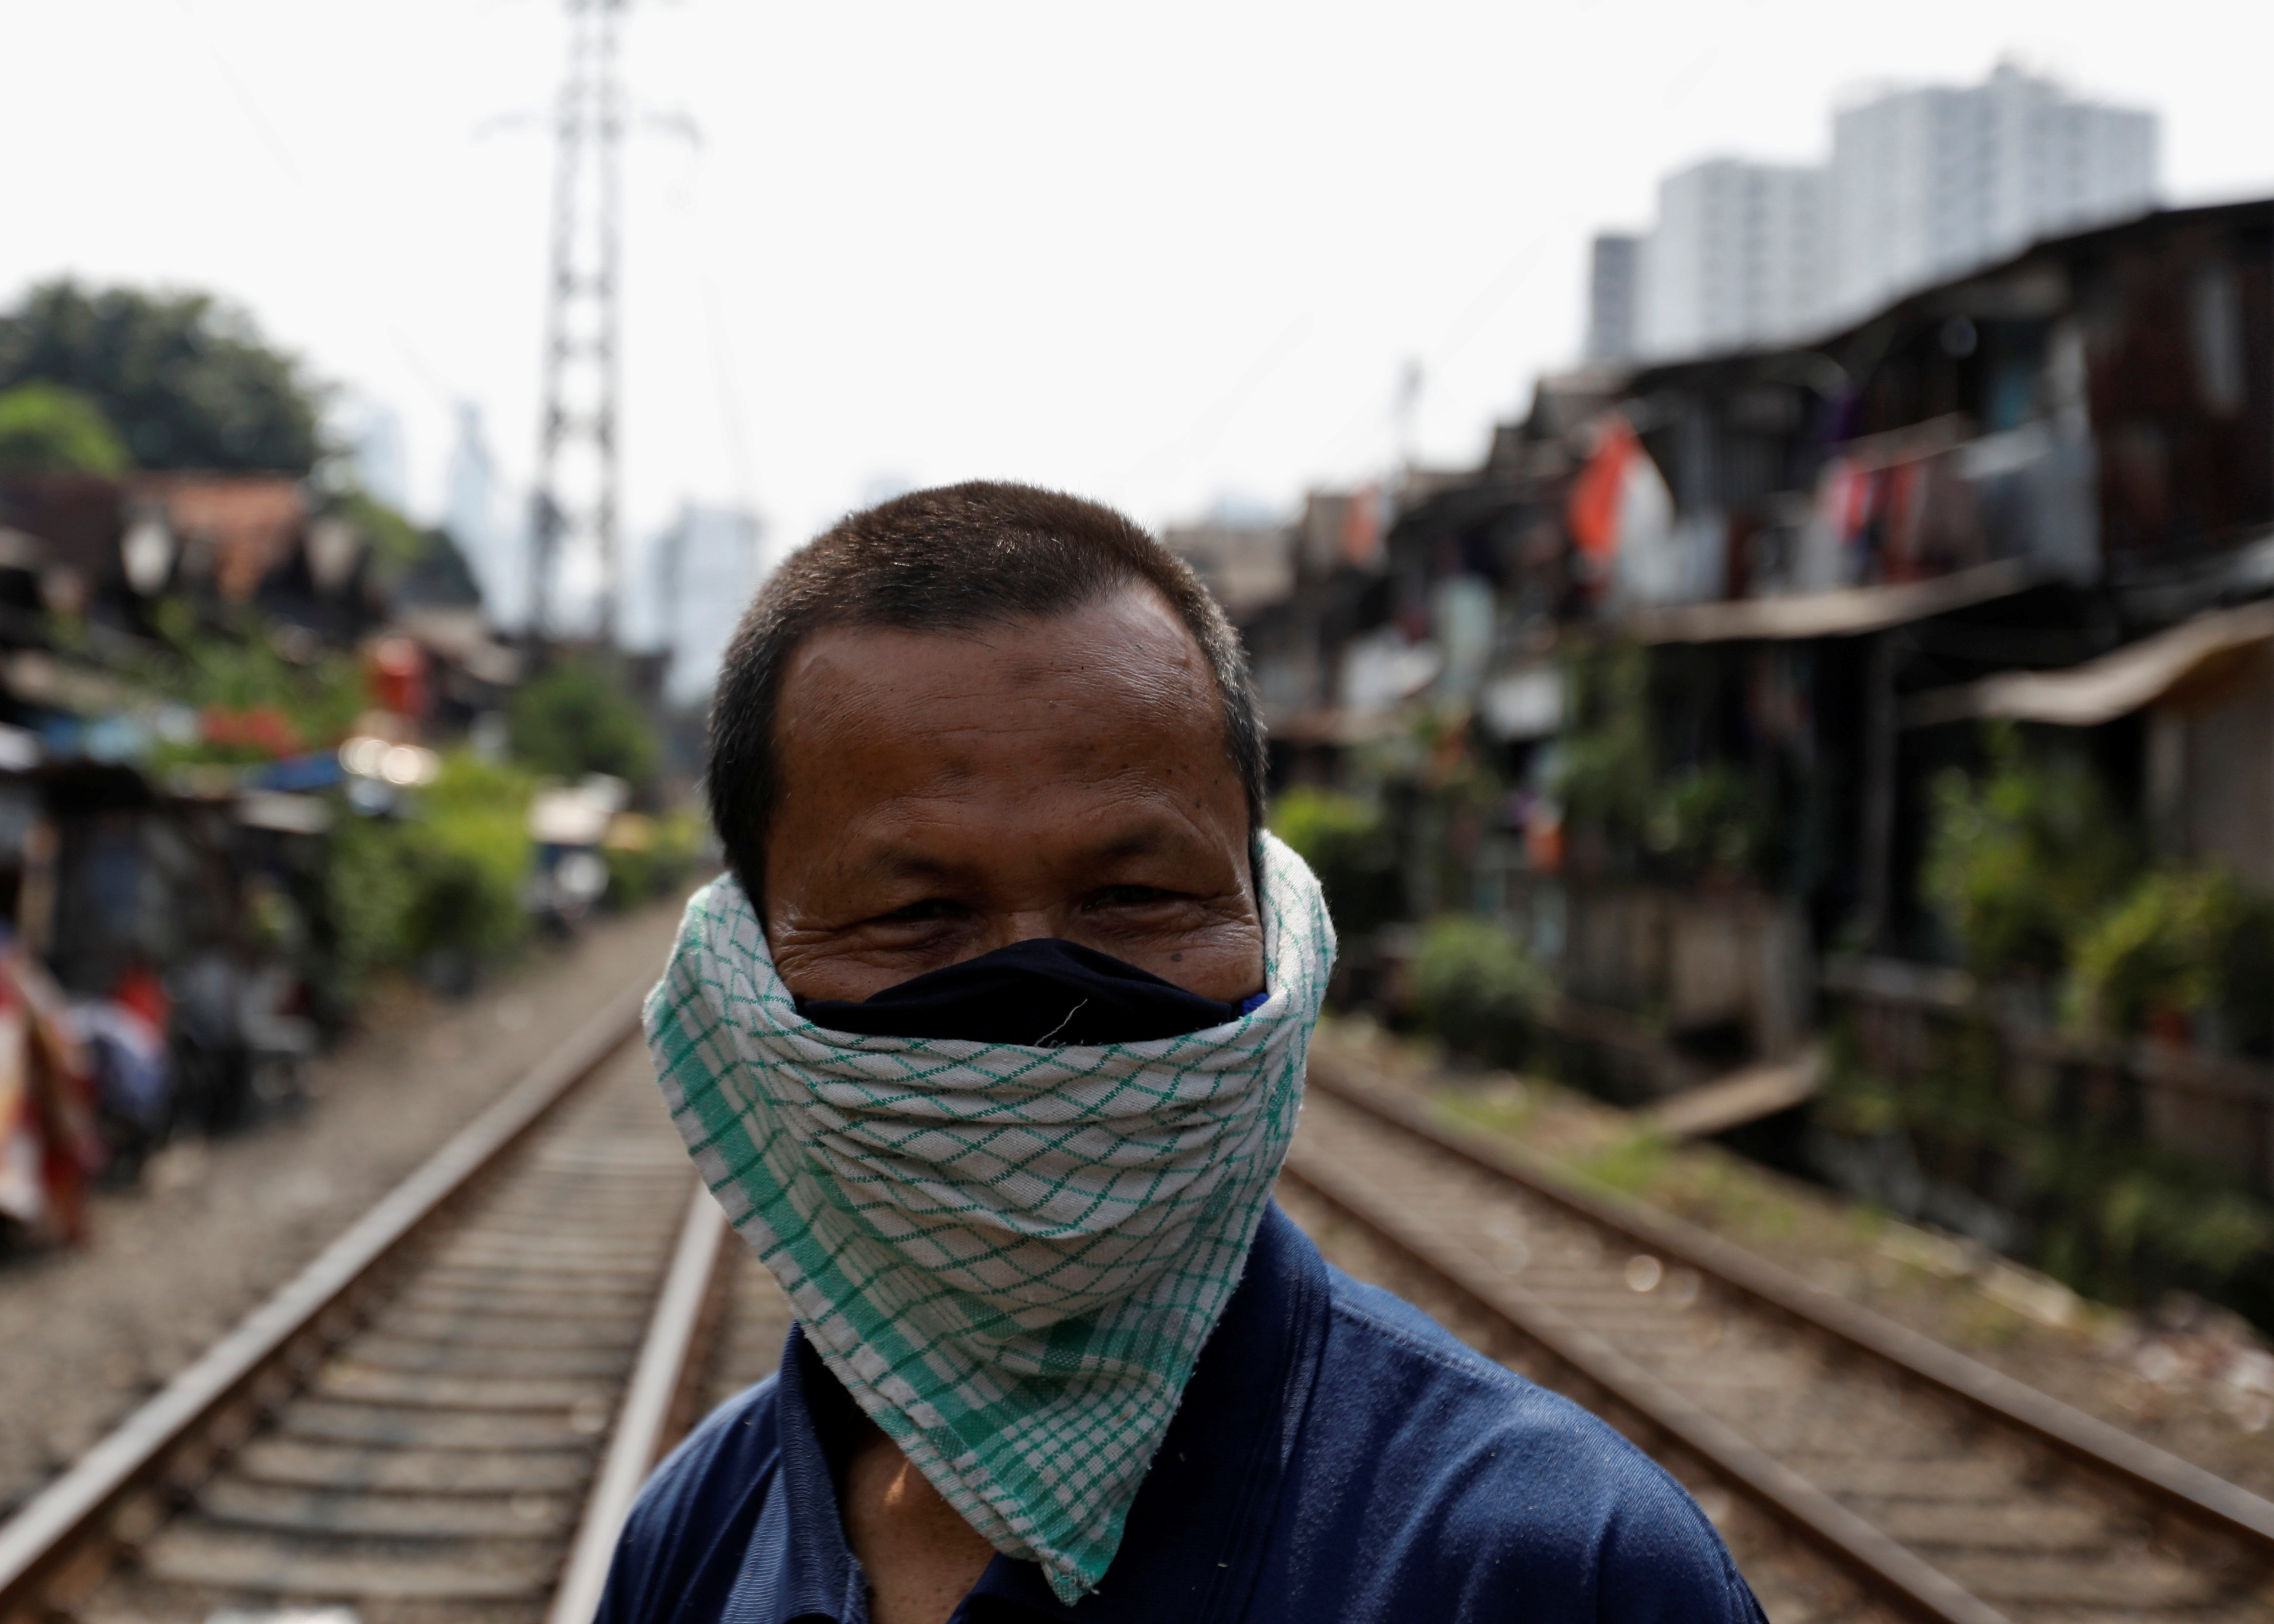 A man covers his face with a napkin along rail tracks, during the large-scale social restrictions to prevent the spread of the CCP virus in Jakarta, Indonesia, on April 12, 2020.